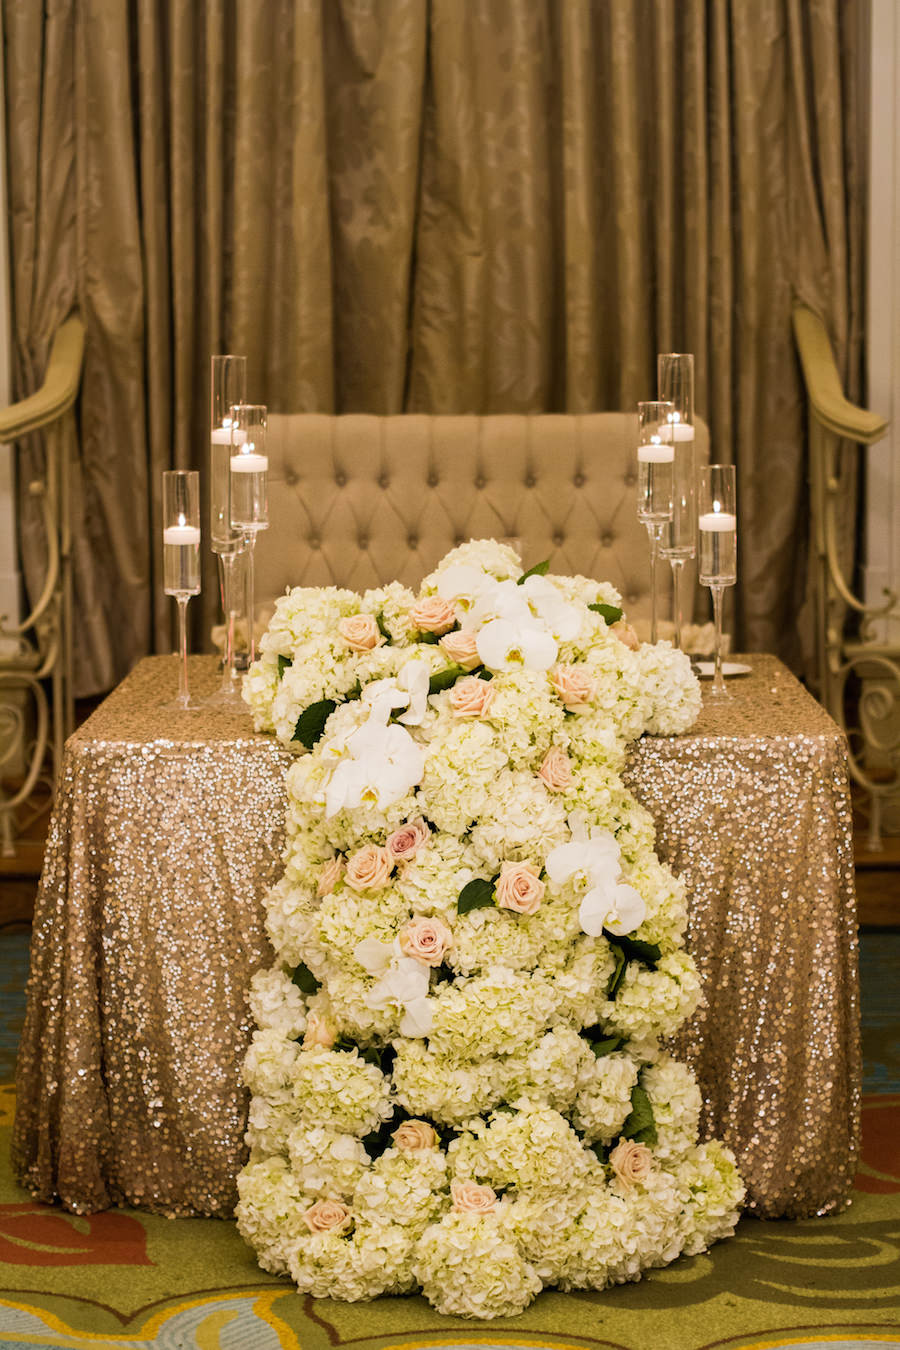 Wedding Reception Decor   Bride and Groom Sweetheart Table with Gold Sequin Table Linen and Cascading Ivory and Blush Floral Garland